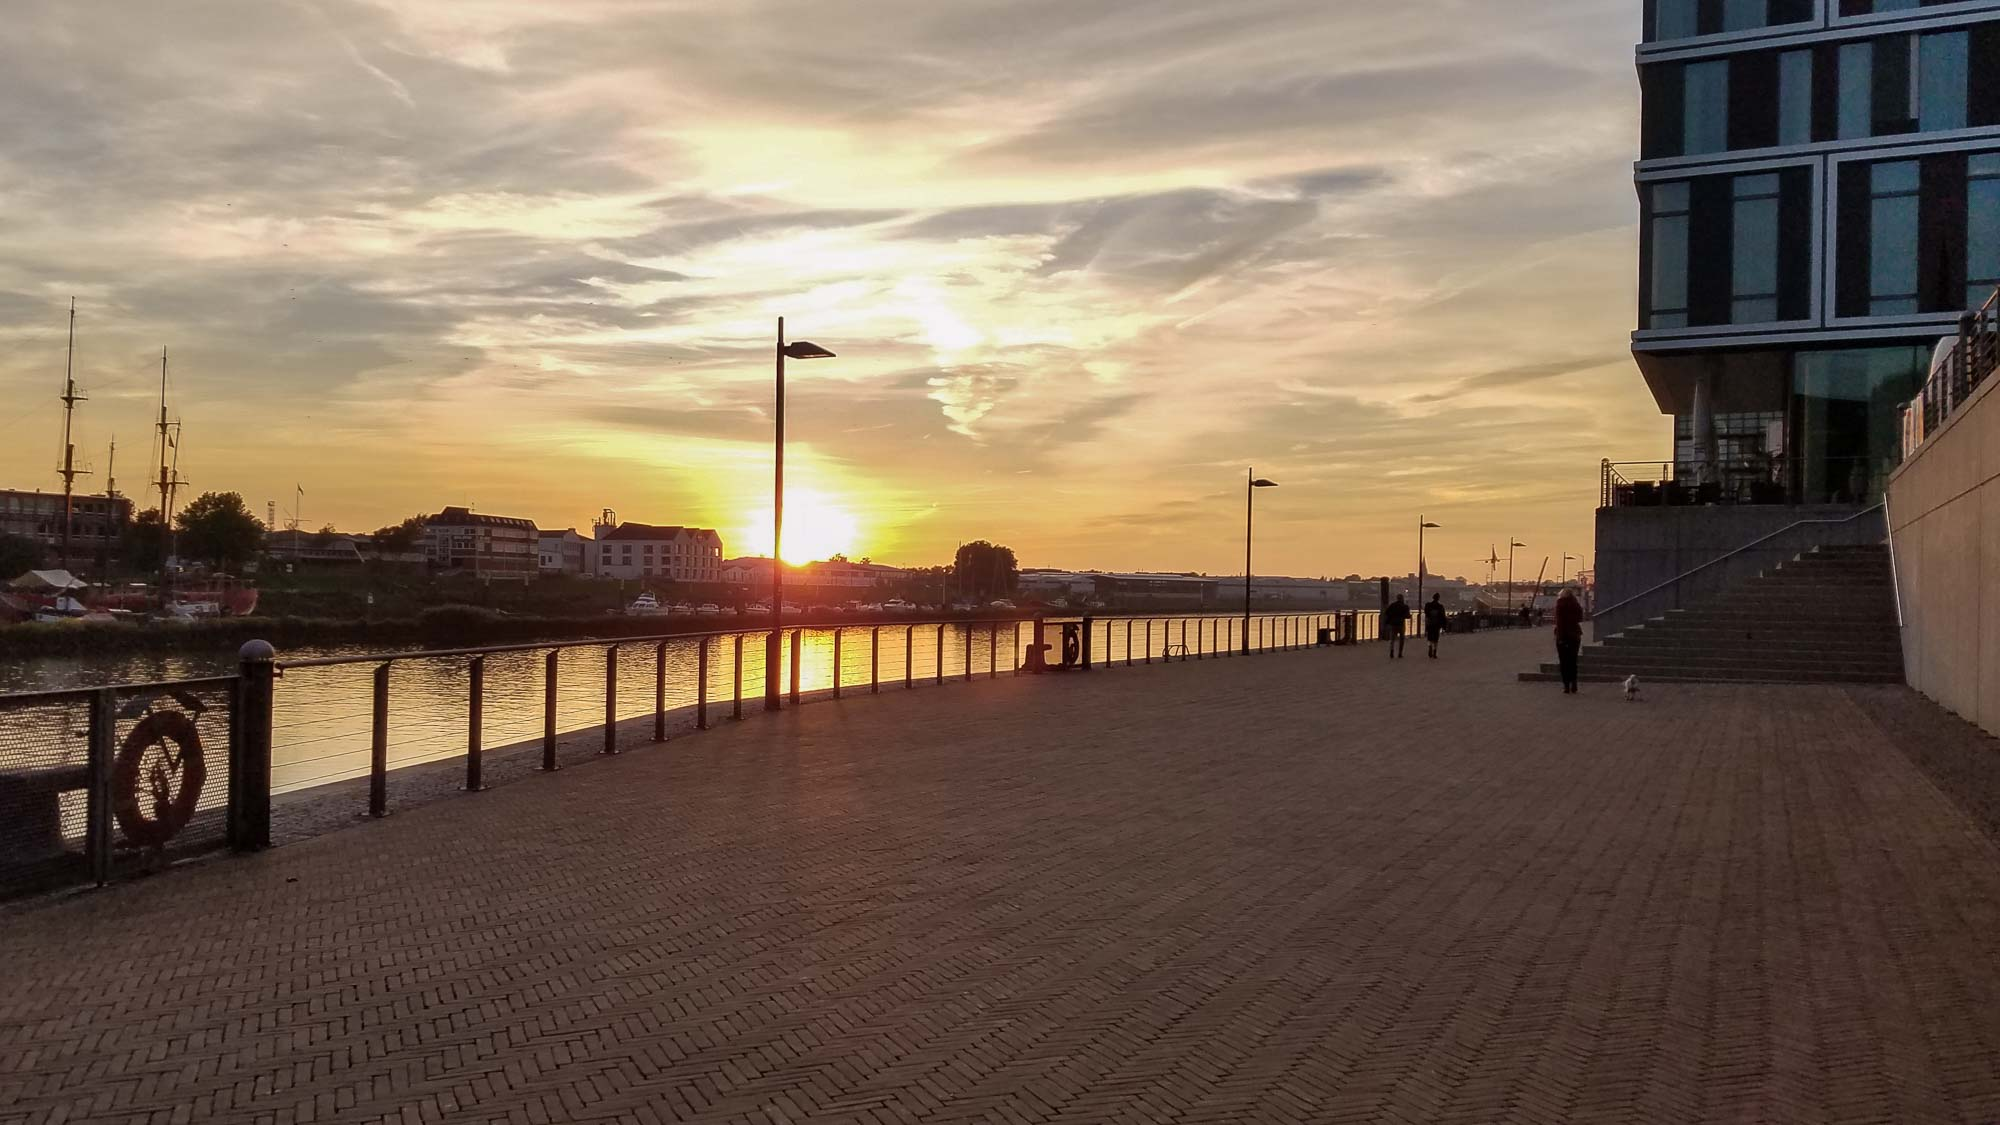 Sunset from the promenade outside the Steigenberger hotel in Bremen, Germany.